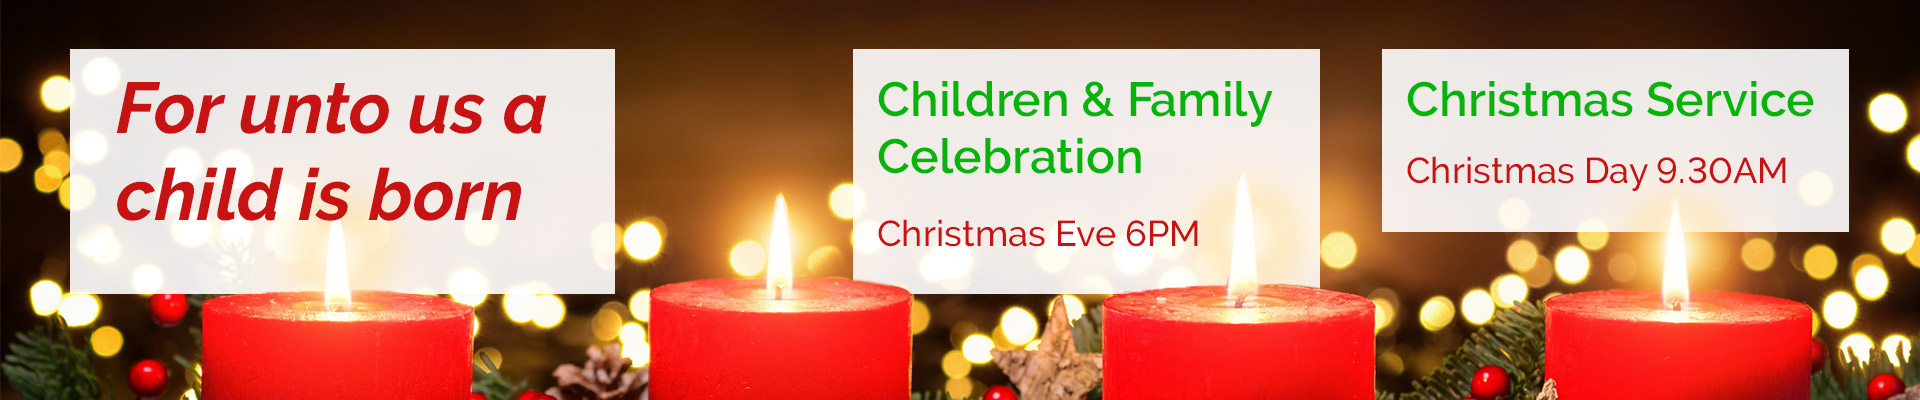 For unto us a child is born. There will be a children & family celebration on Christmas Eve at 6PM and Christmas Day service will be held at 9.30AM